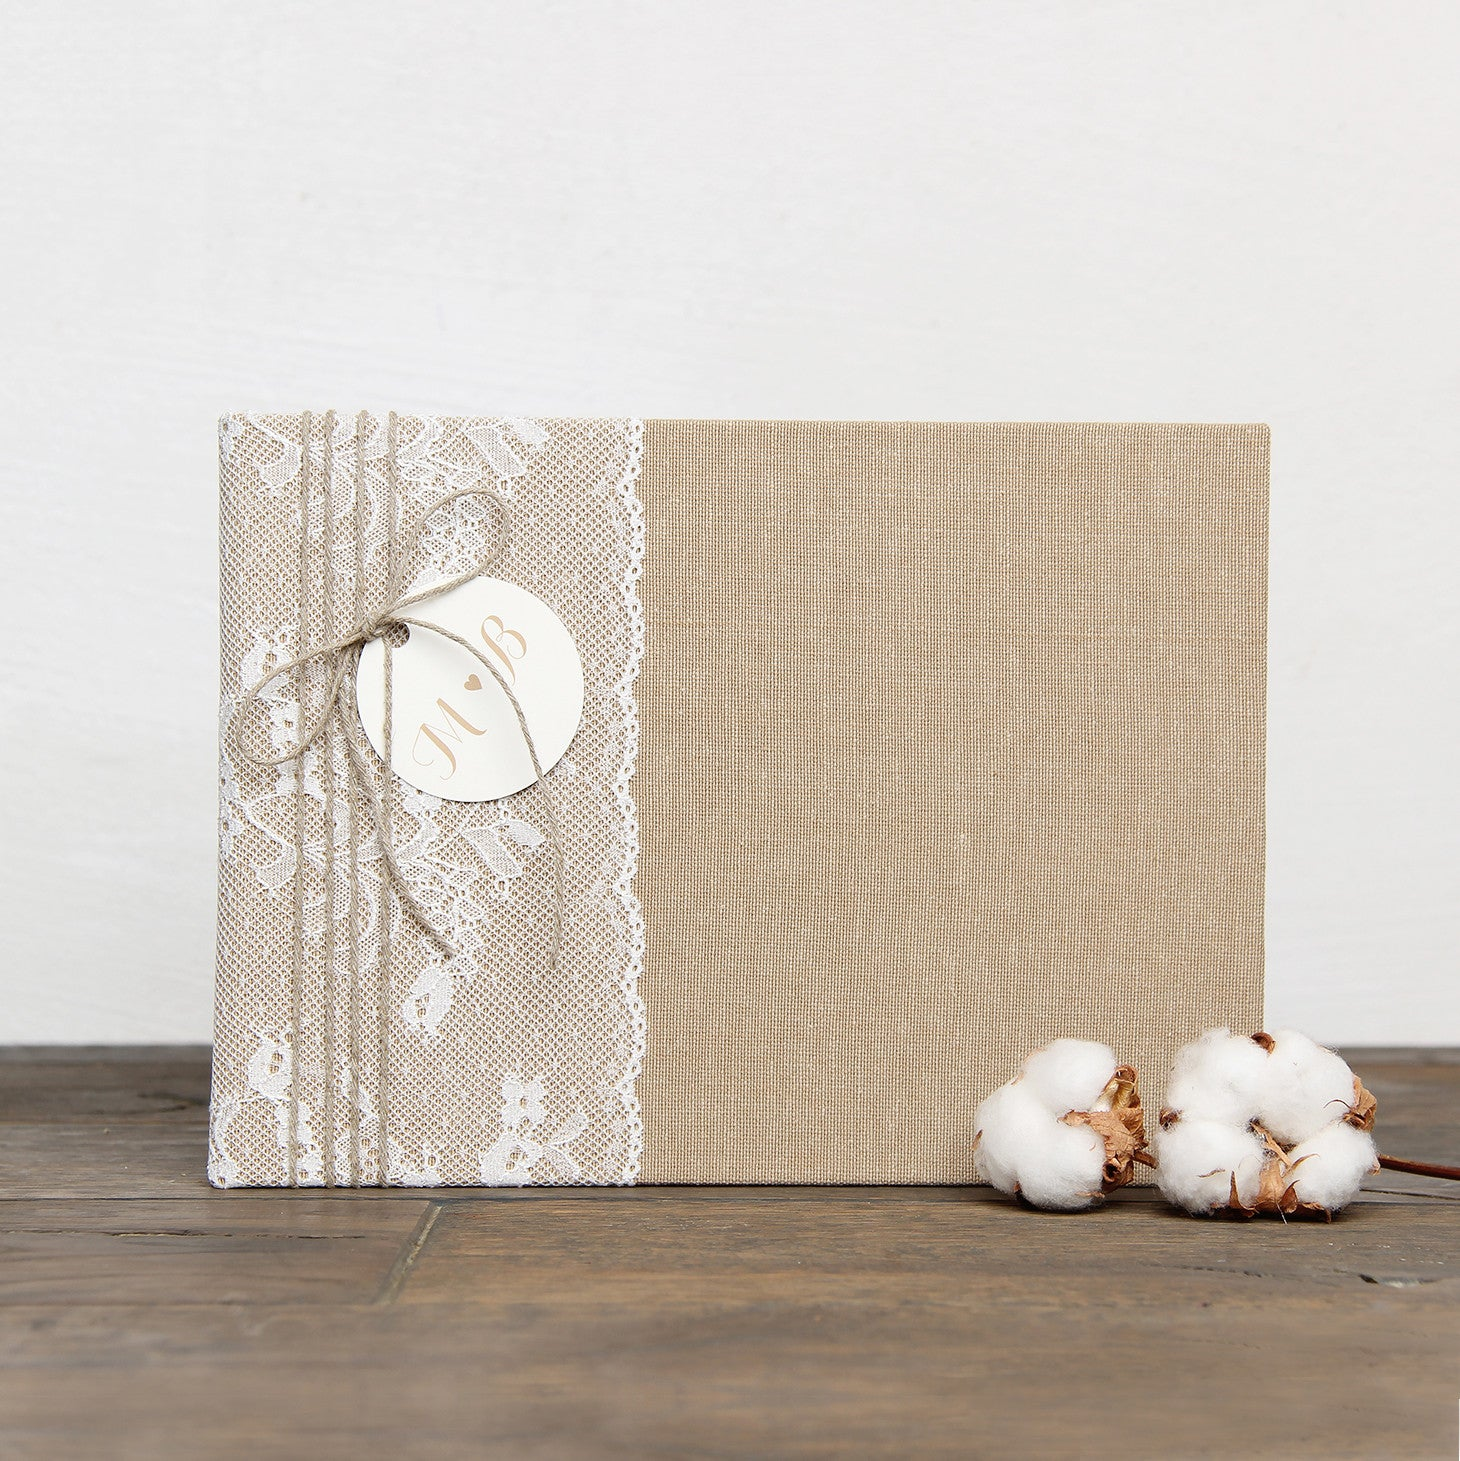 Instax Guest Book Wedding Album Instant Rustic with Lace Names in First Page - Liumy